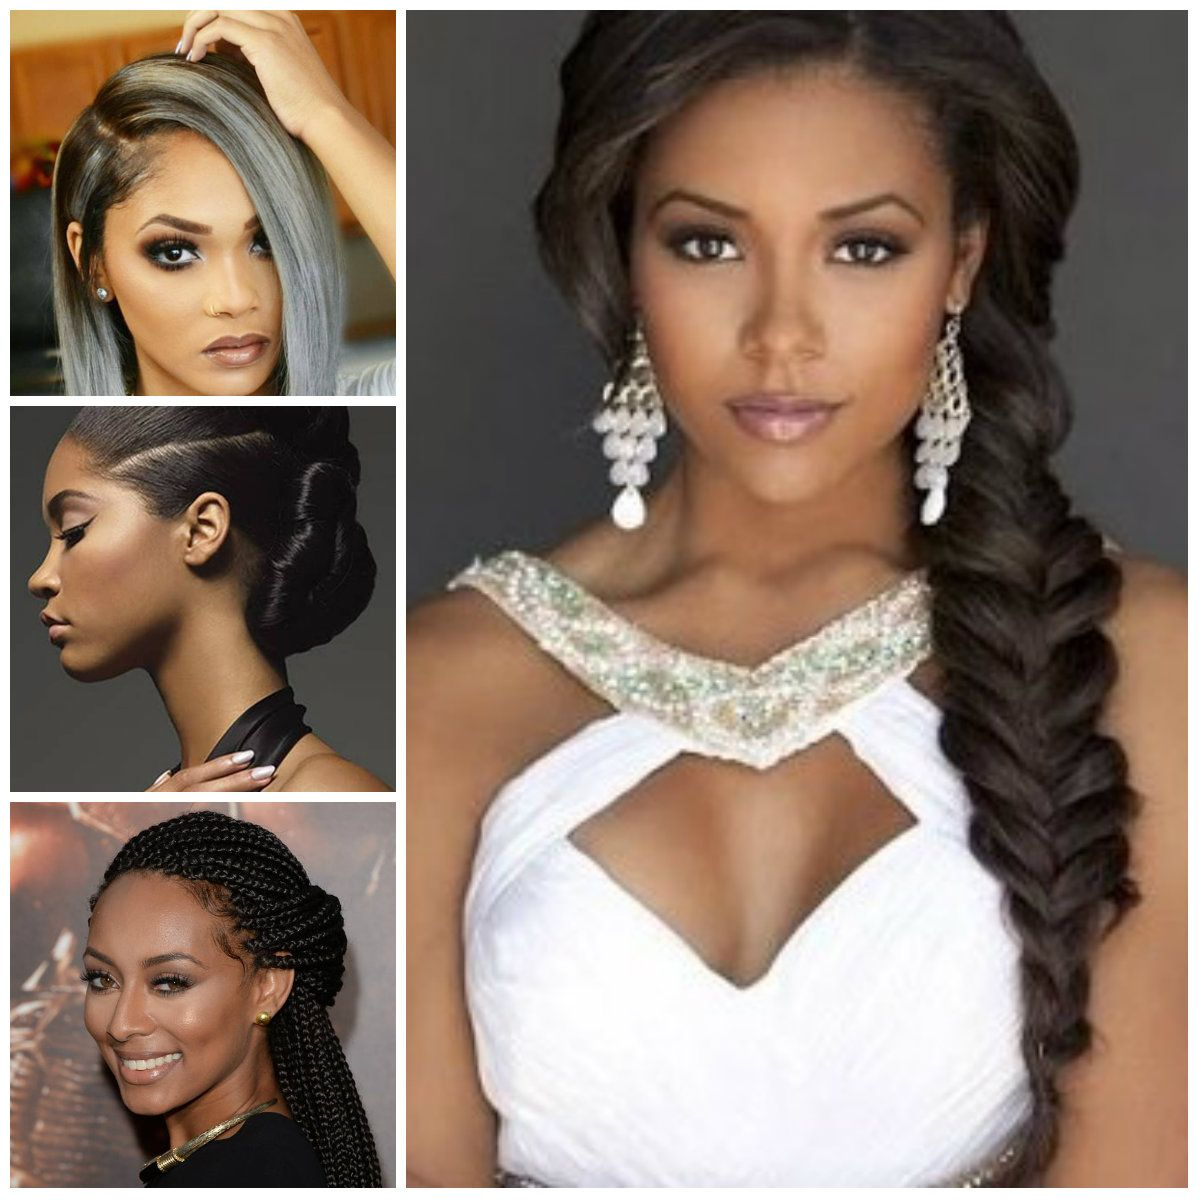 Black Women Hairstyles   Haircuts, Hairstyles 2016 / 2017 and Hair ...